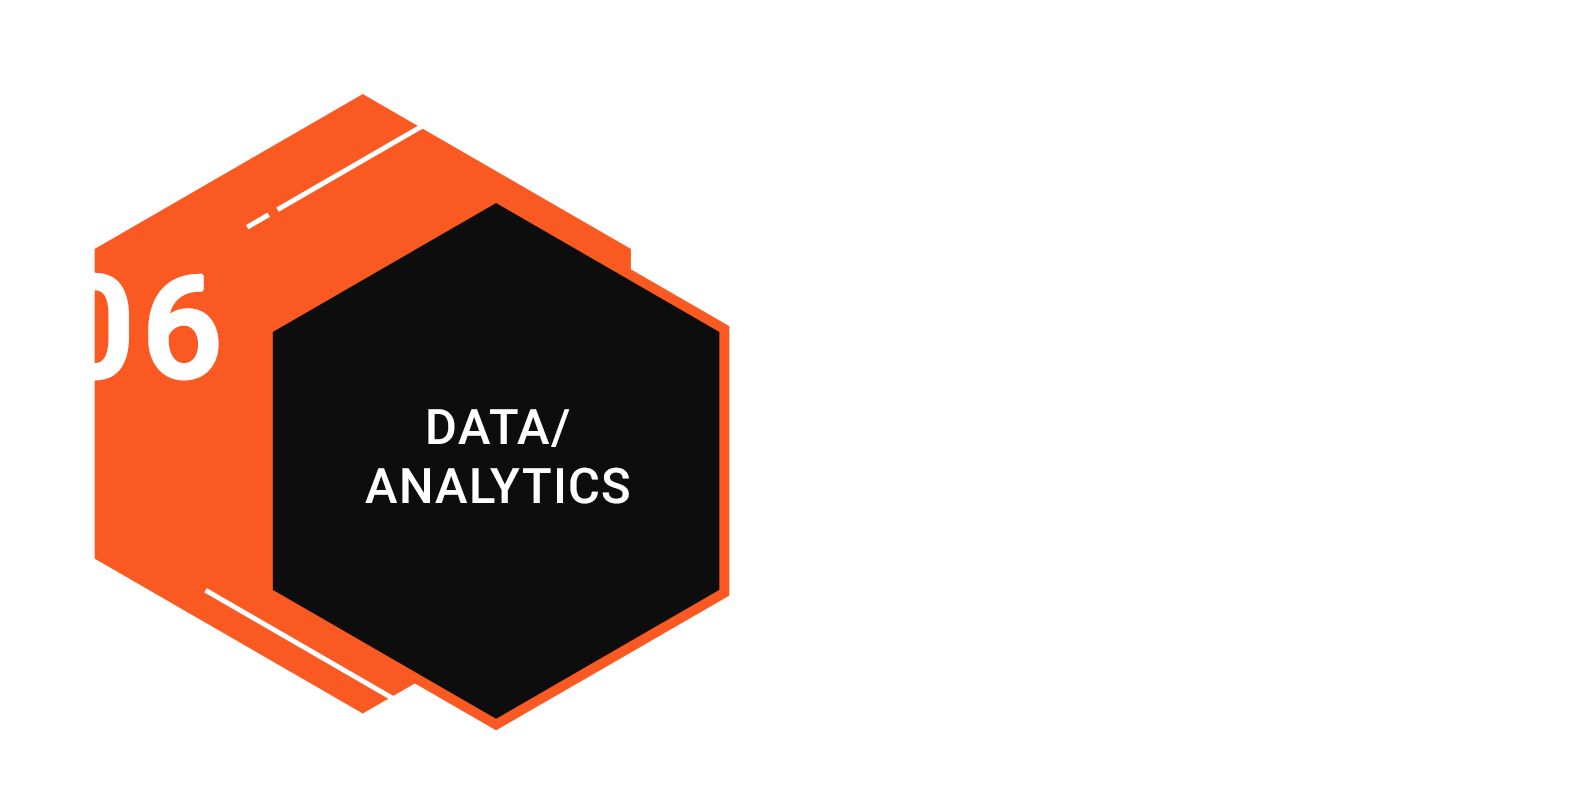 HIVE Berlin by The Esports Observer on Opportunities for Data & Analytics